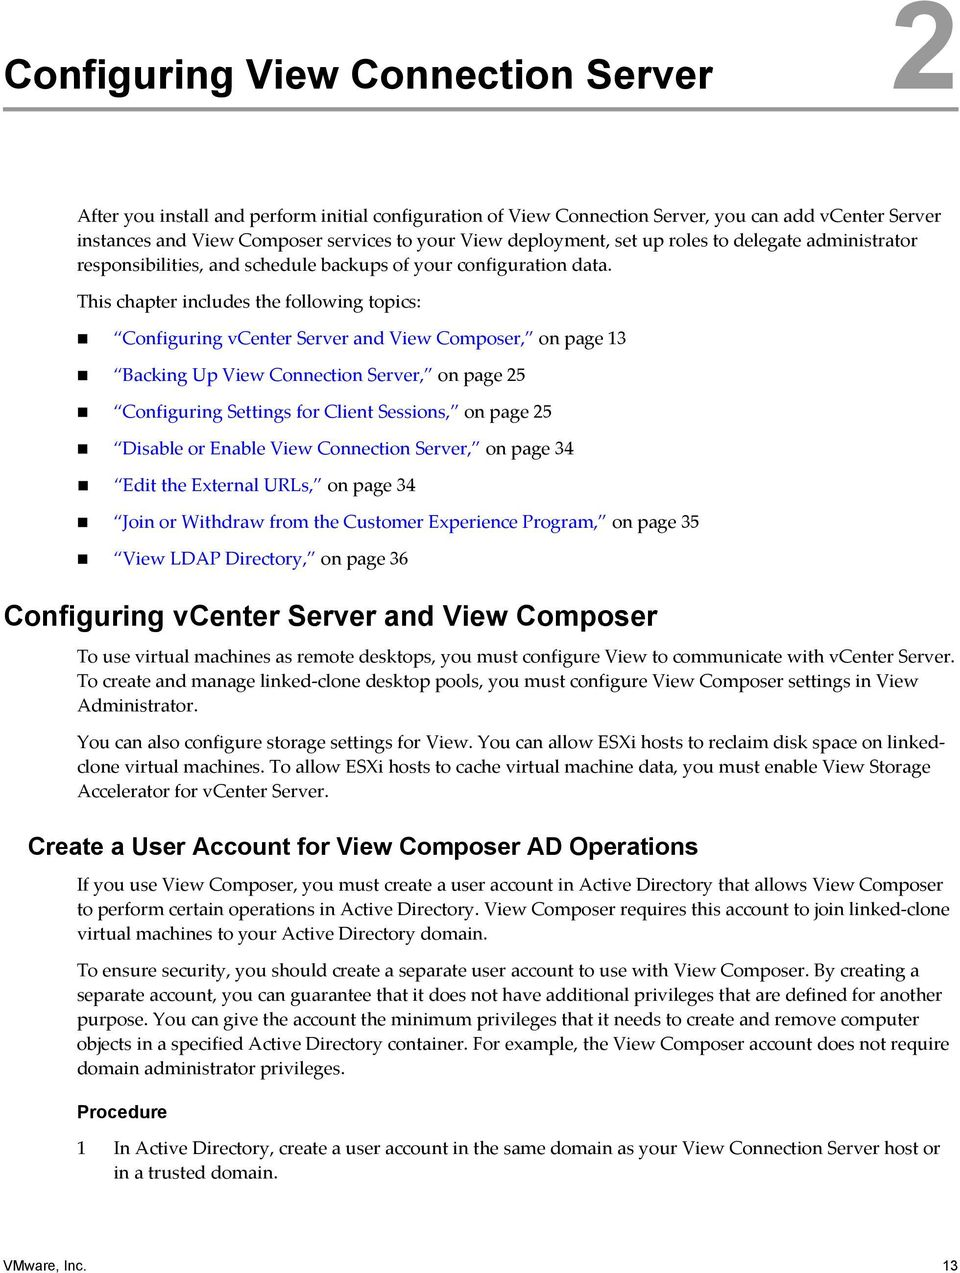 This chapter includes the following topics: Configuring vcenter Server and View Composer, on page 13 Backing Up View Connection Server, on page 25 Configuring Settings for Client Sessions, on page 25